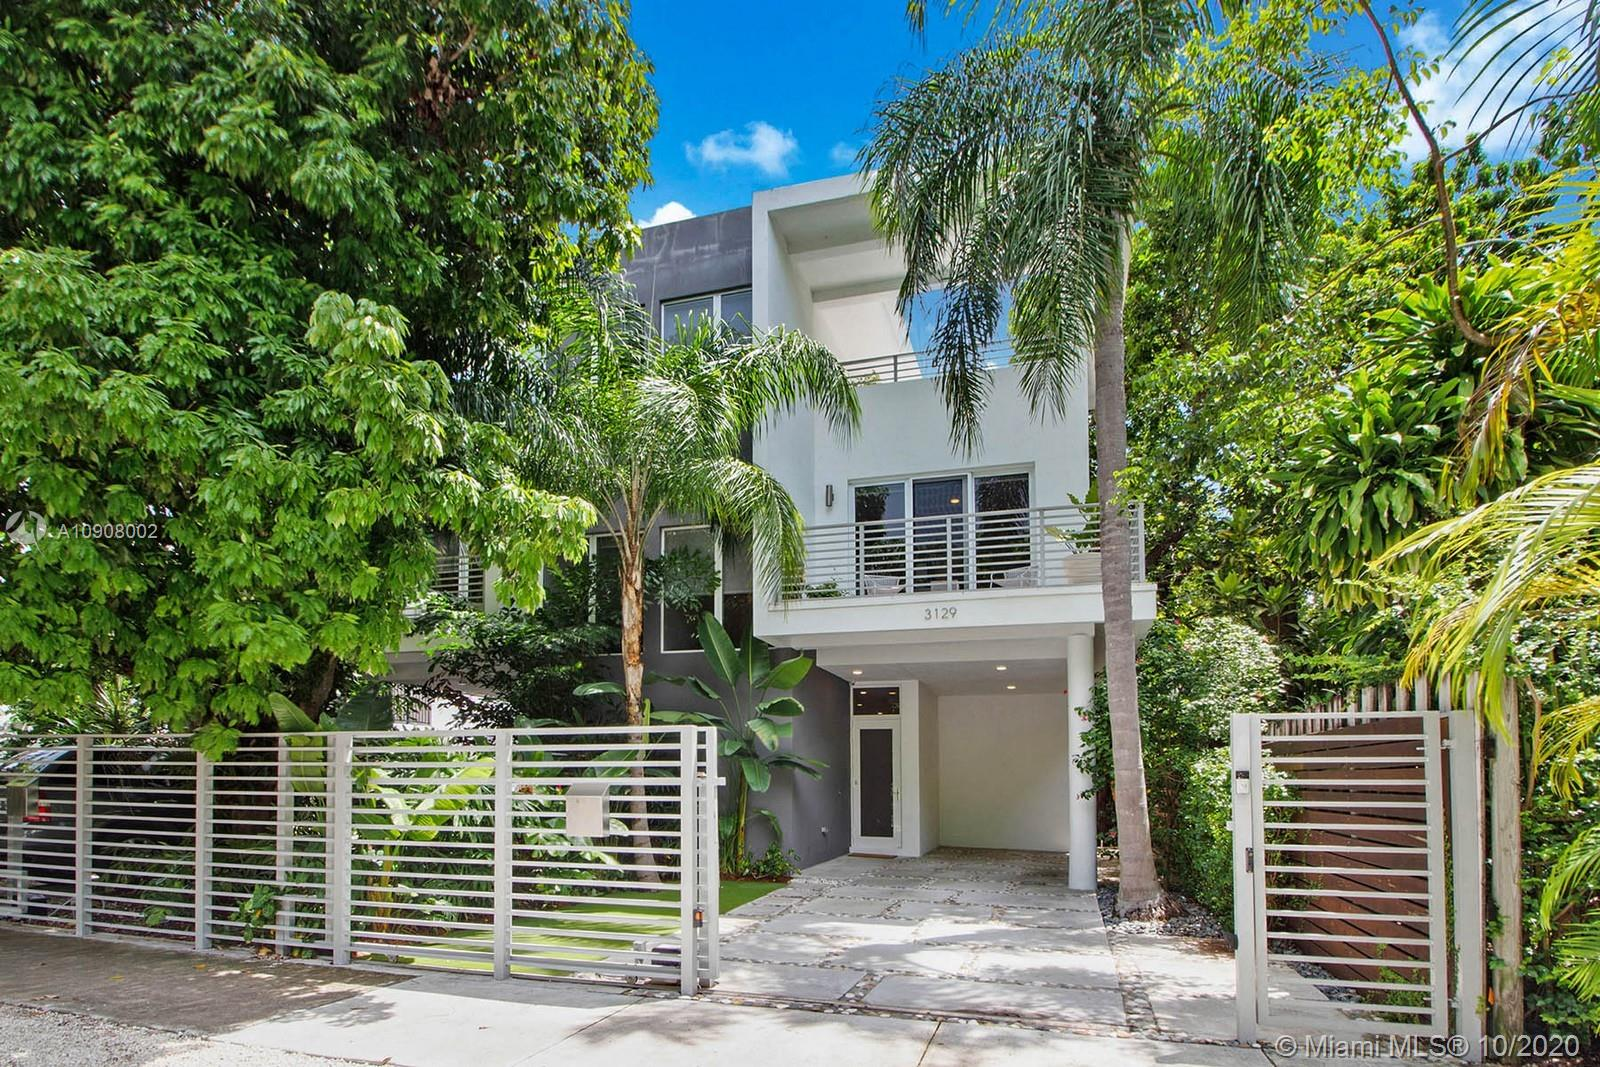 Immaculately designed contemporary Coconut Grove townhouse on adored Matilda Street. This modern newer construction residence has everything you have dreamed of for your new home! Functional  spacious layout with custom built ins and soaring vaulted ceilings. Banks of impact glass doors open to the private swimming pool. Designer finishes throughout reminiscent of multiple million dollar estates. Chill and relax on your own private roof top terrace surrounded by native foliage. Retreat to your very own Sanctuary in the urban Grove neighborhood in the heart of Miami. You even have your very own putting green to practice some golf! From every window you see lush green foliage. Gated entry way with a separate pedestrian entrance make walkability easy to the parks, cafes, CocoWalk and Marinas.